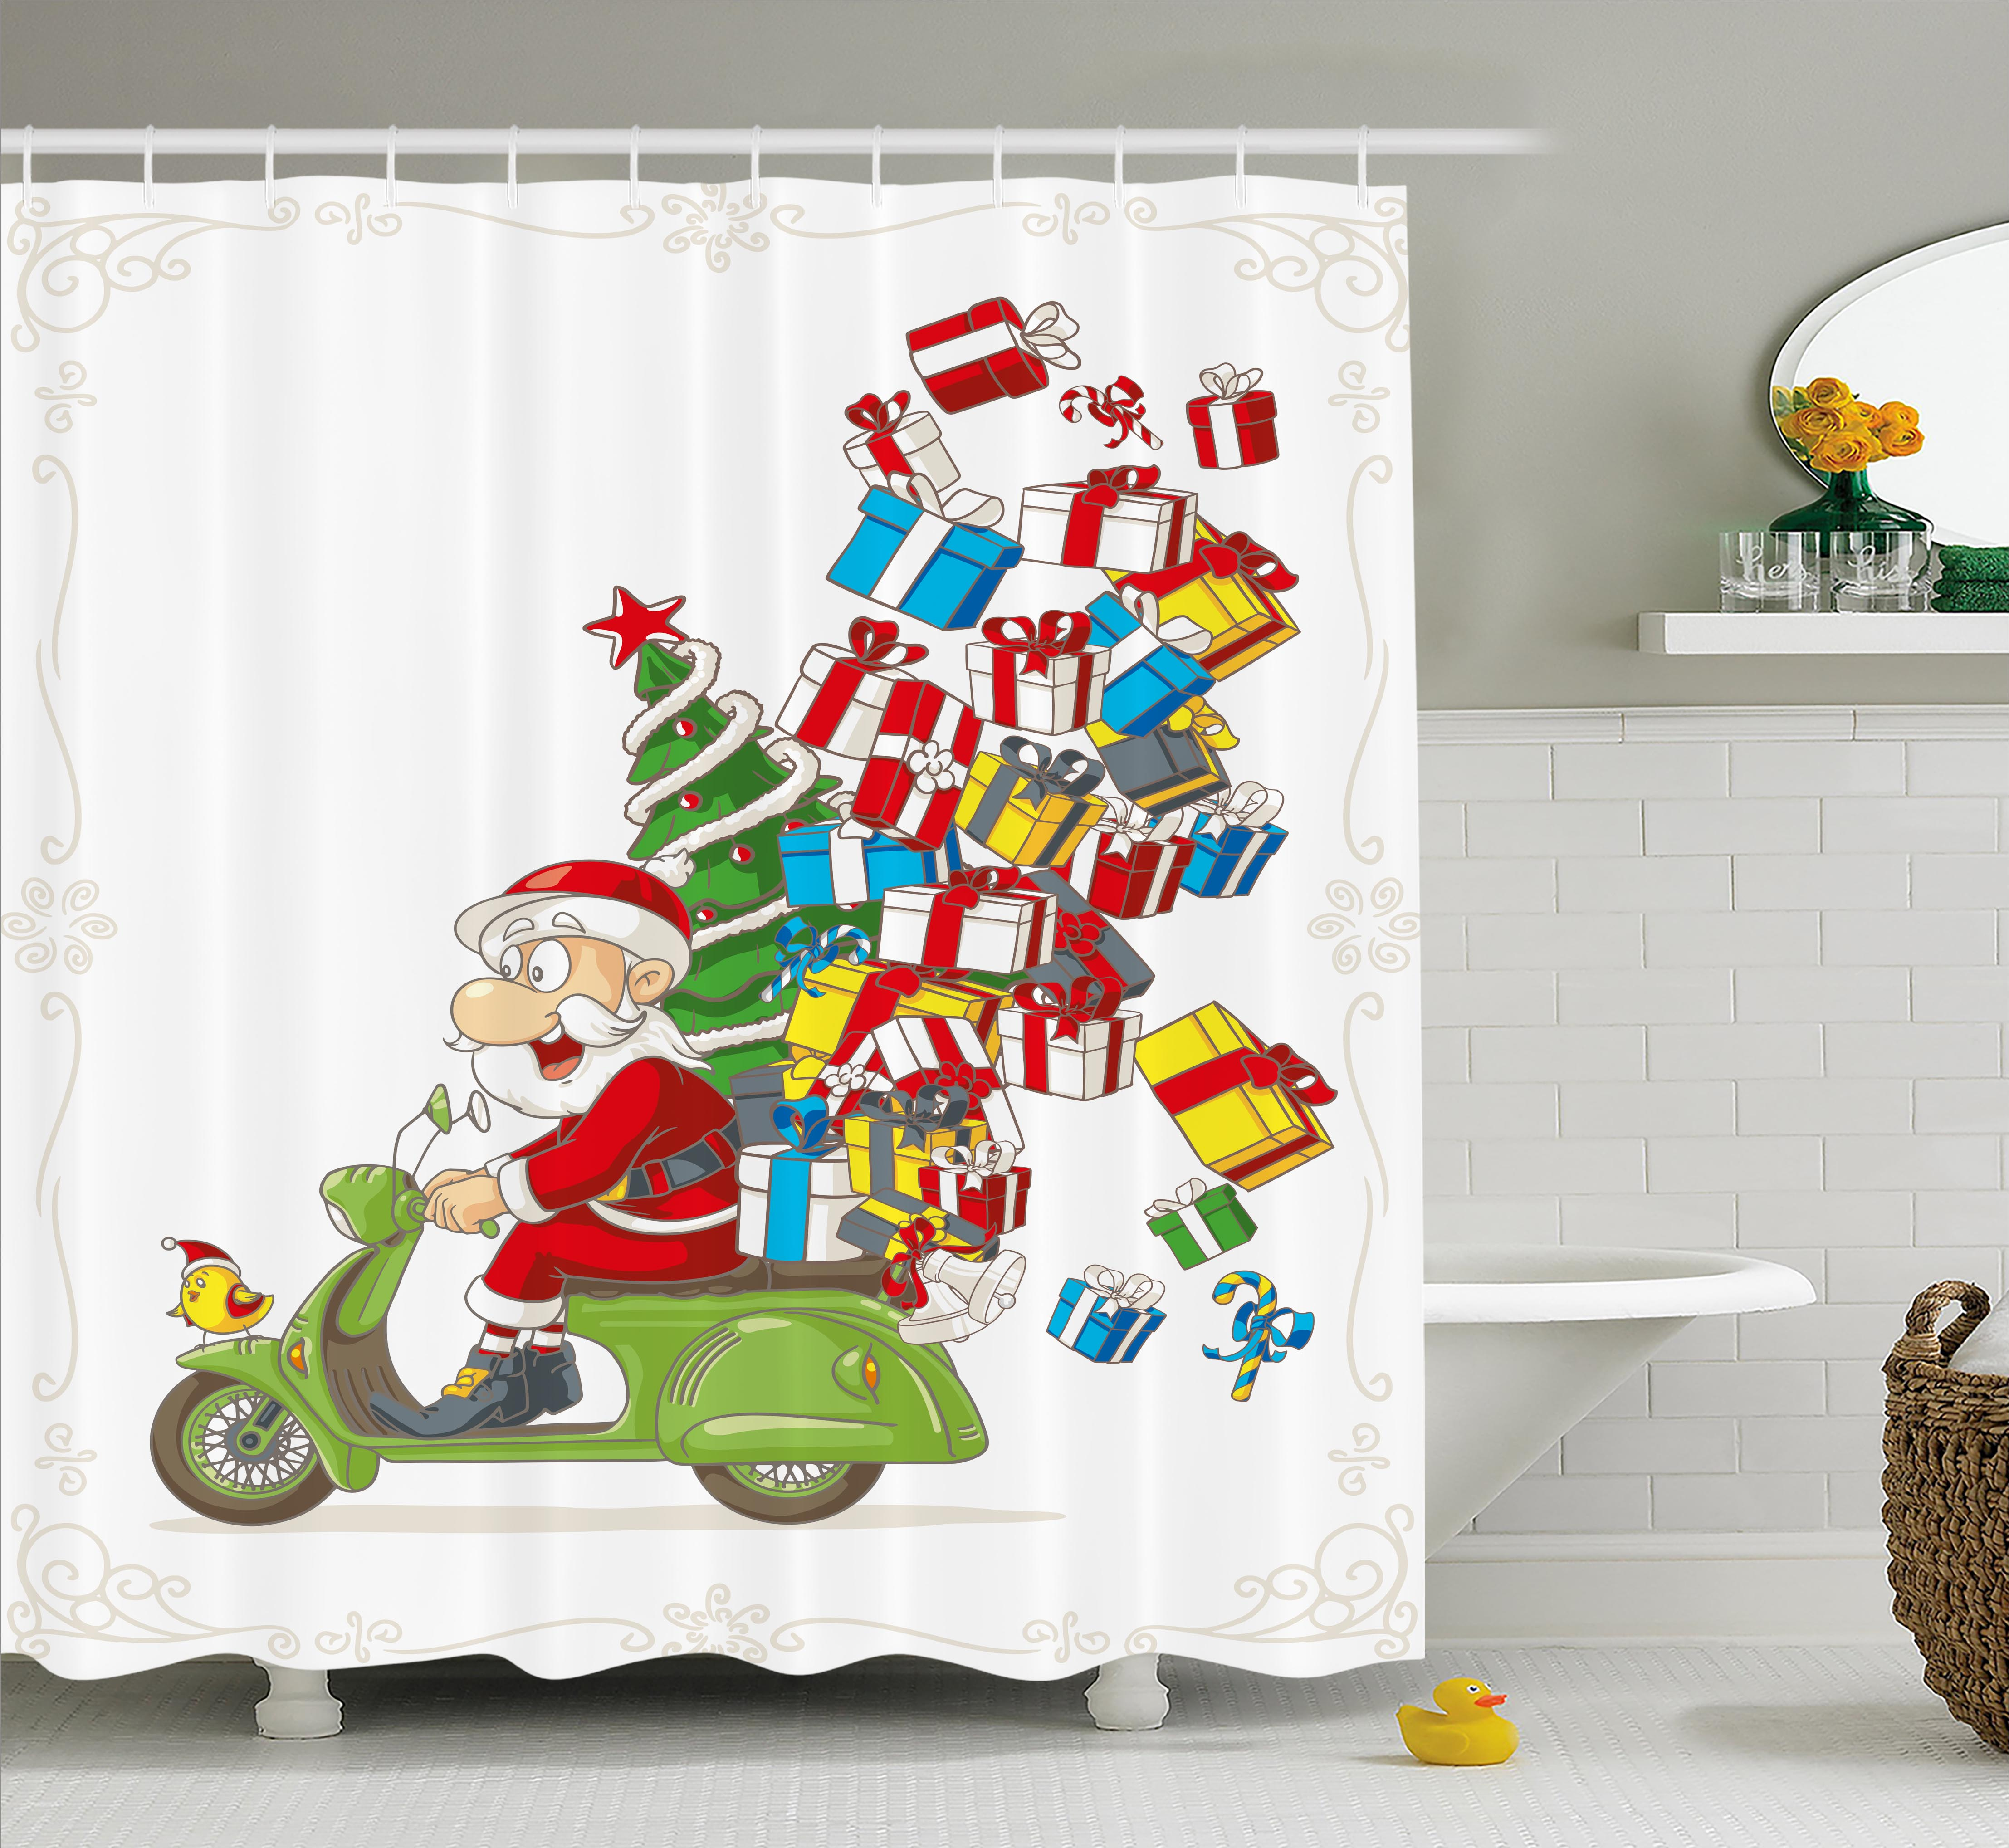 kids bathroom sets walmart shower curtain set santa on motorbike scooter 18979